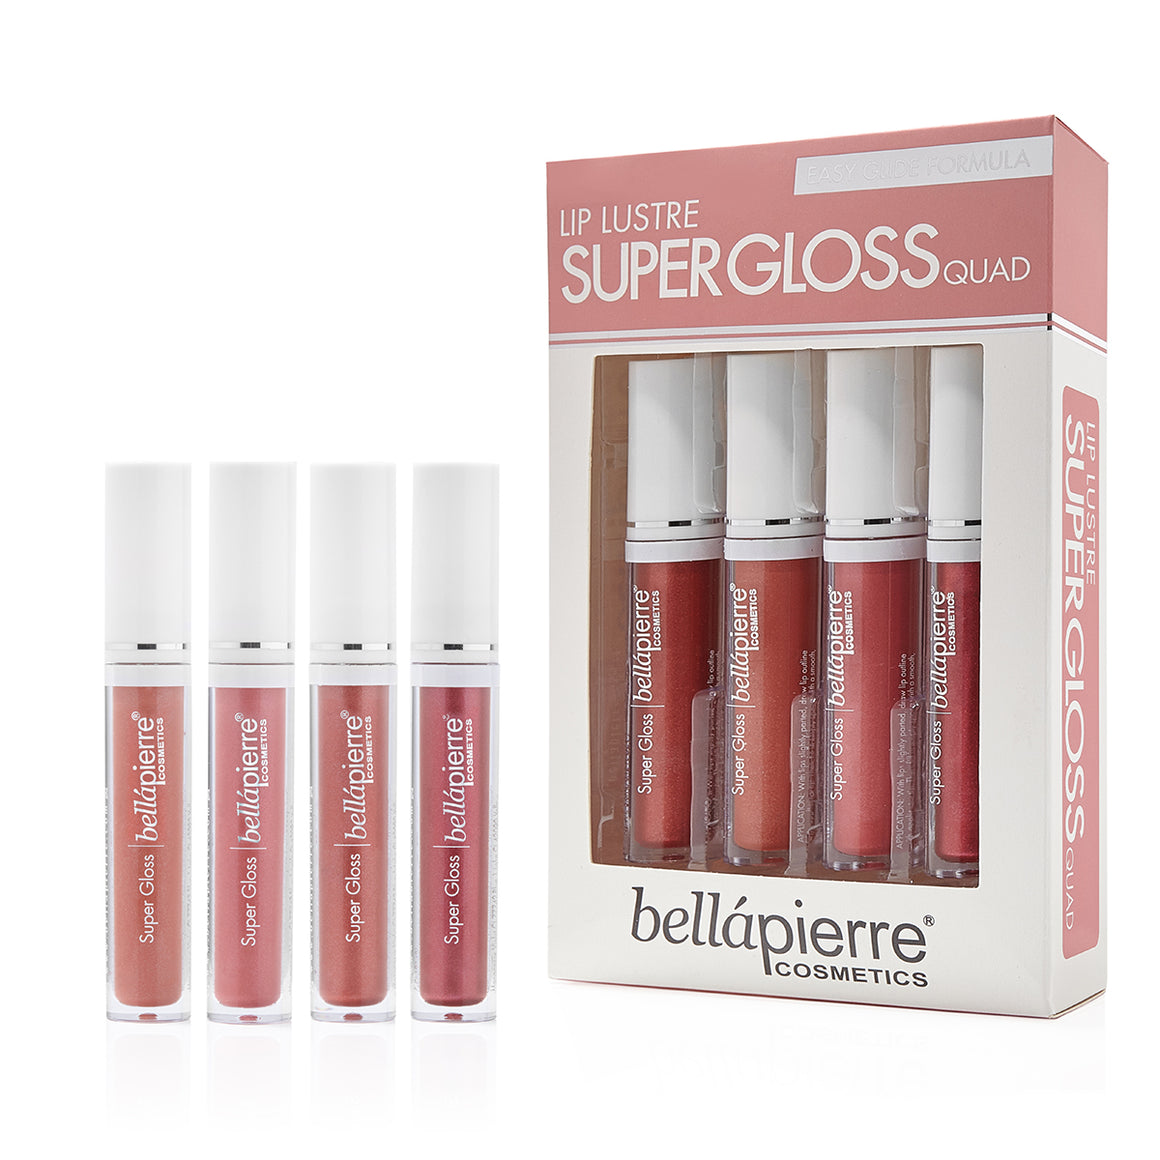 Lip Lustre Super Gloss Quad